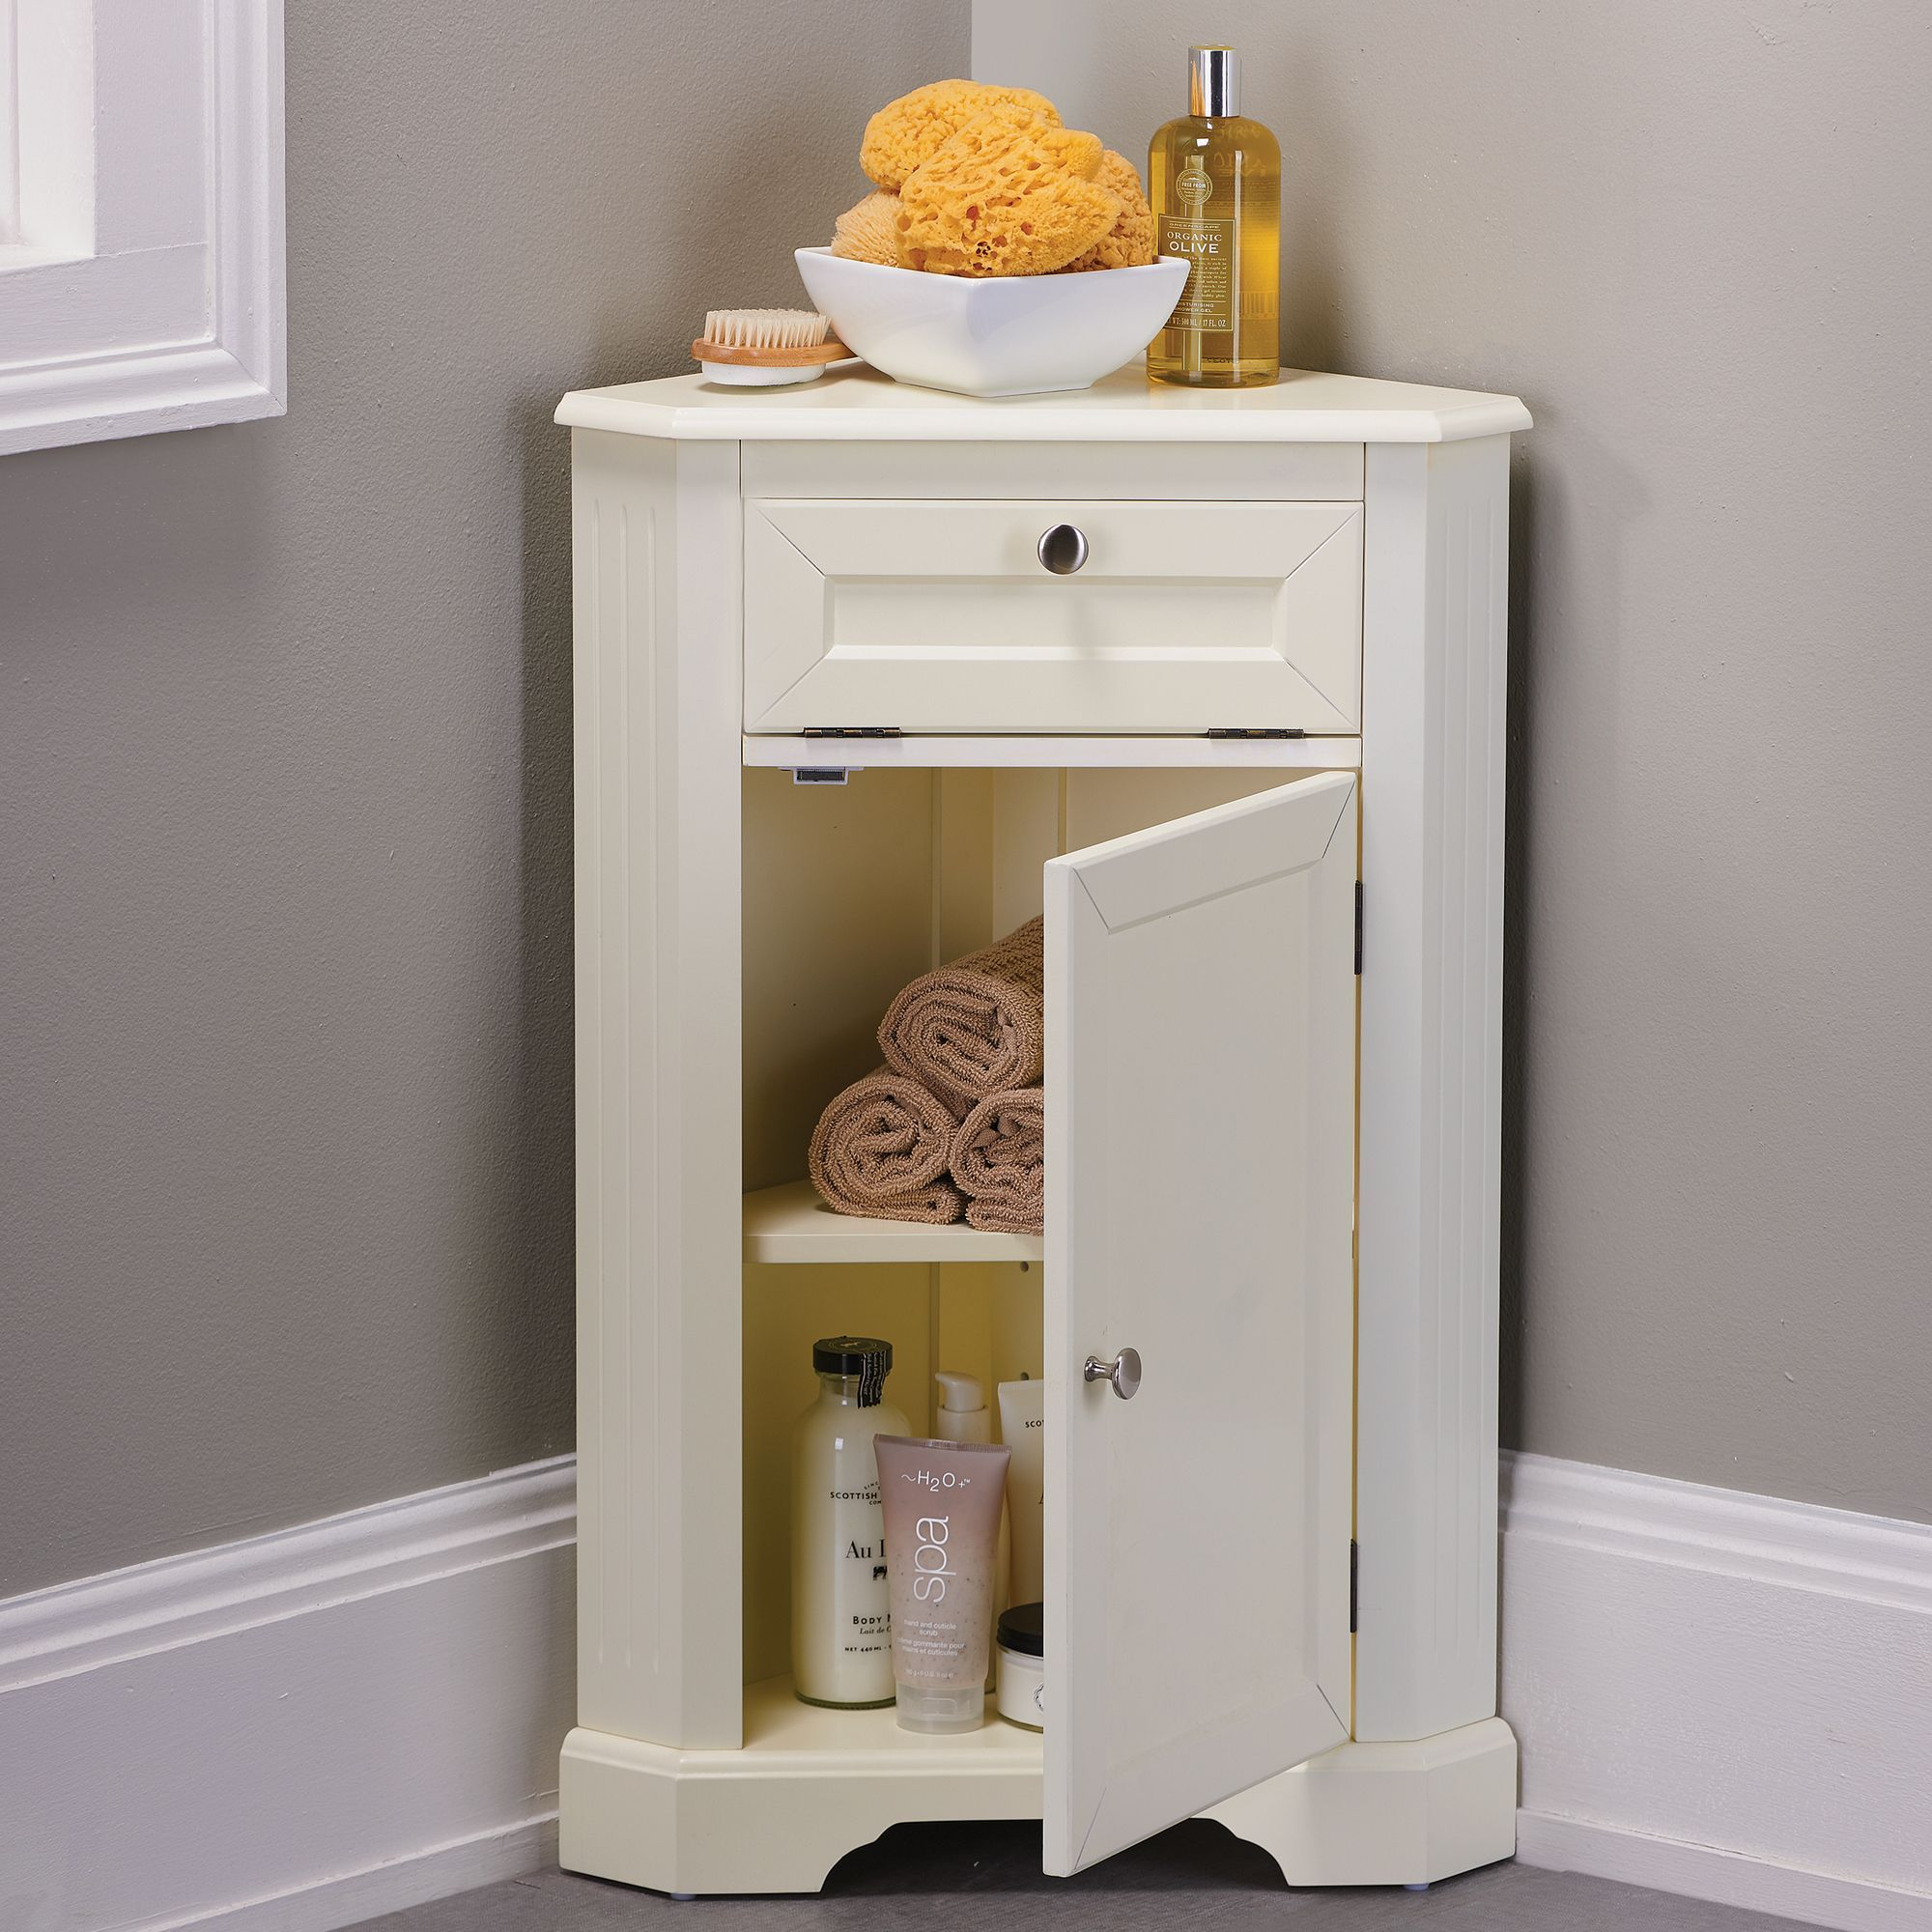 Maximize Storage Space In Small Bathrooms With Our Weatherby Corner Storage Cabi Corner Storage Cabinet Bathroom Corner Storage Cabinet Bathroom Corner Storage